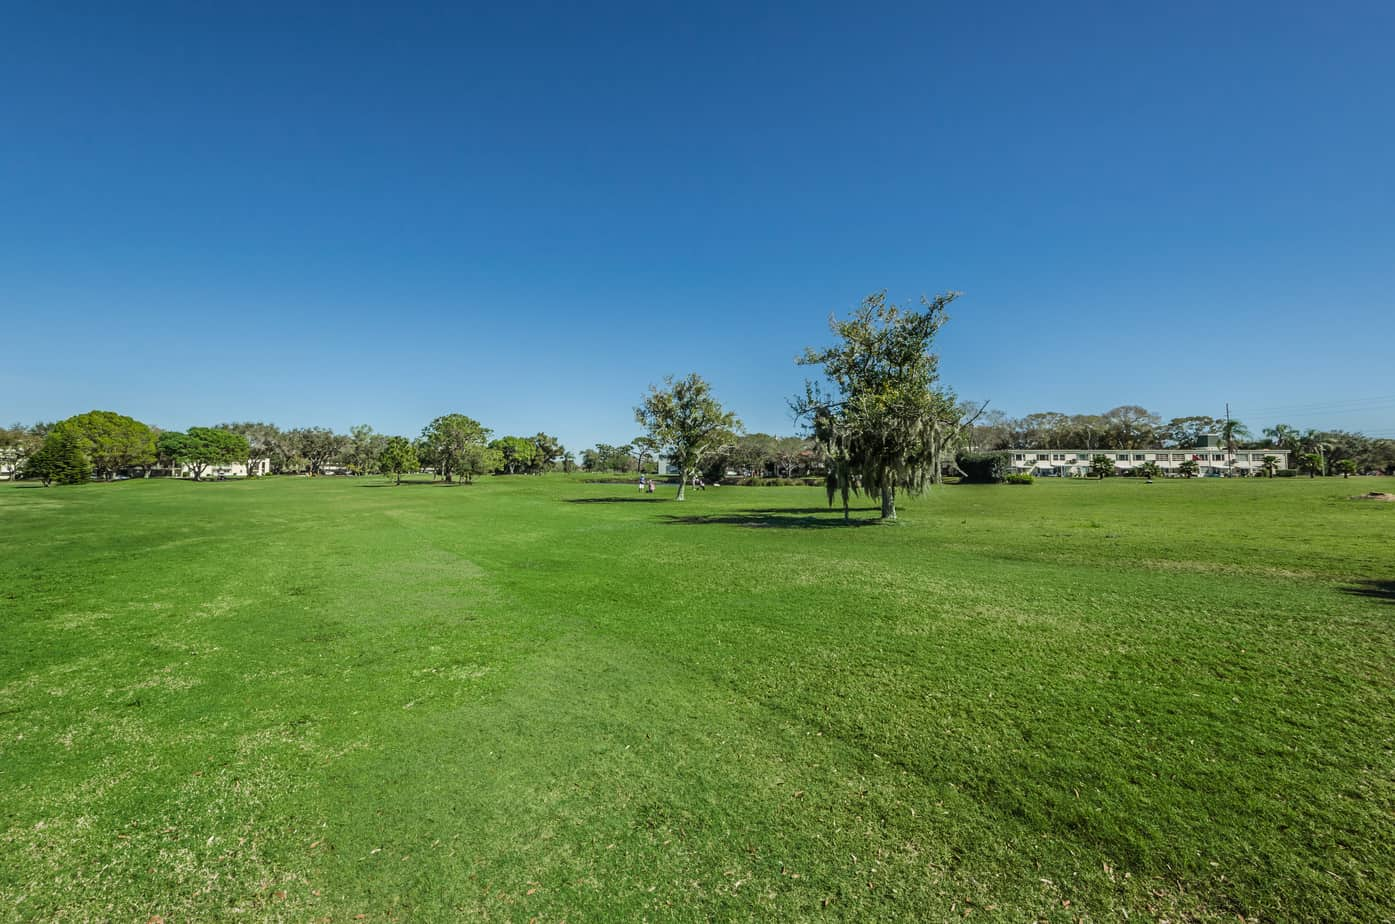 39-2285-Israeli-Dr-#17-Clearwater-Fl-33763-Golf Course6